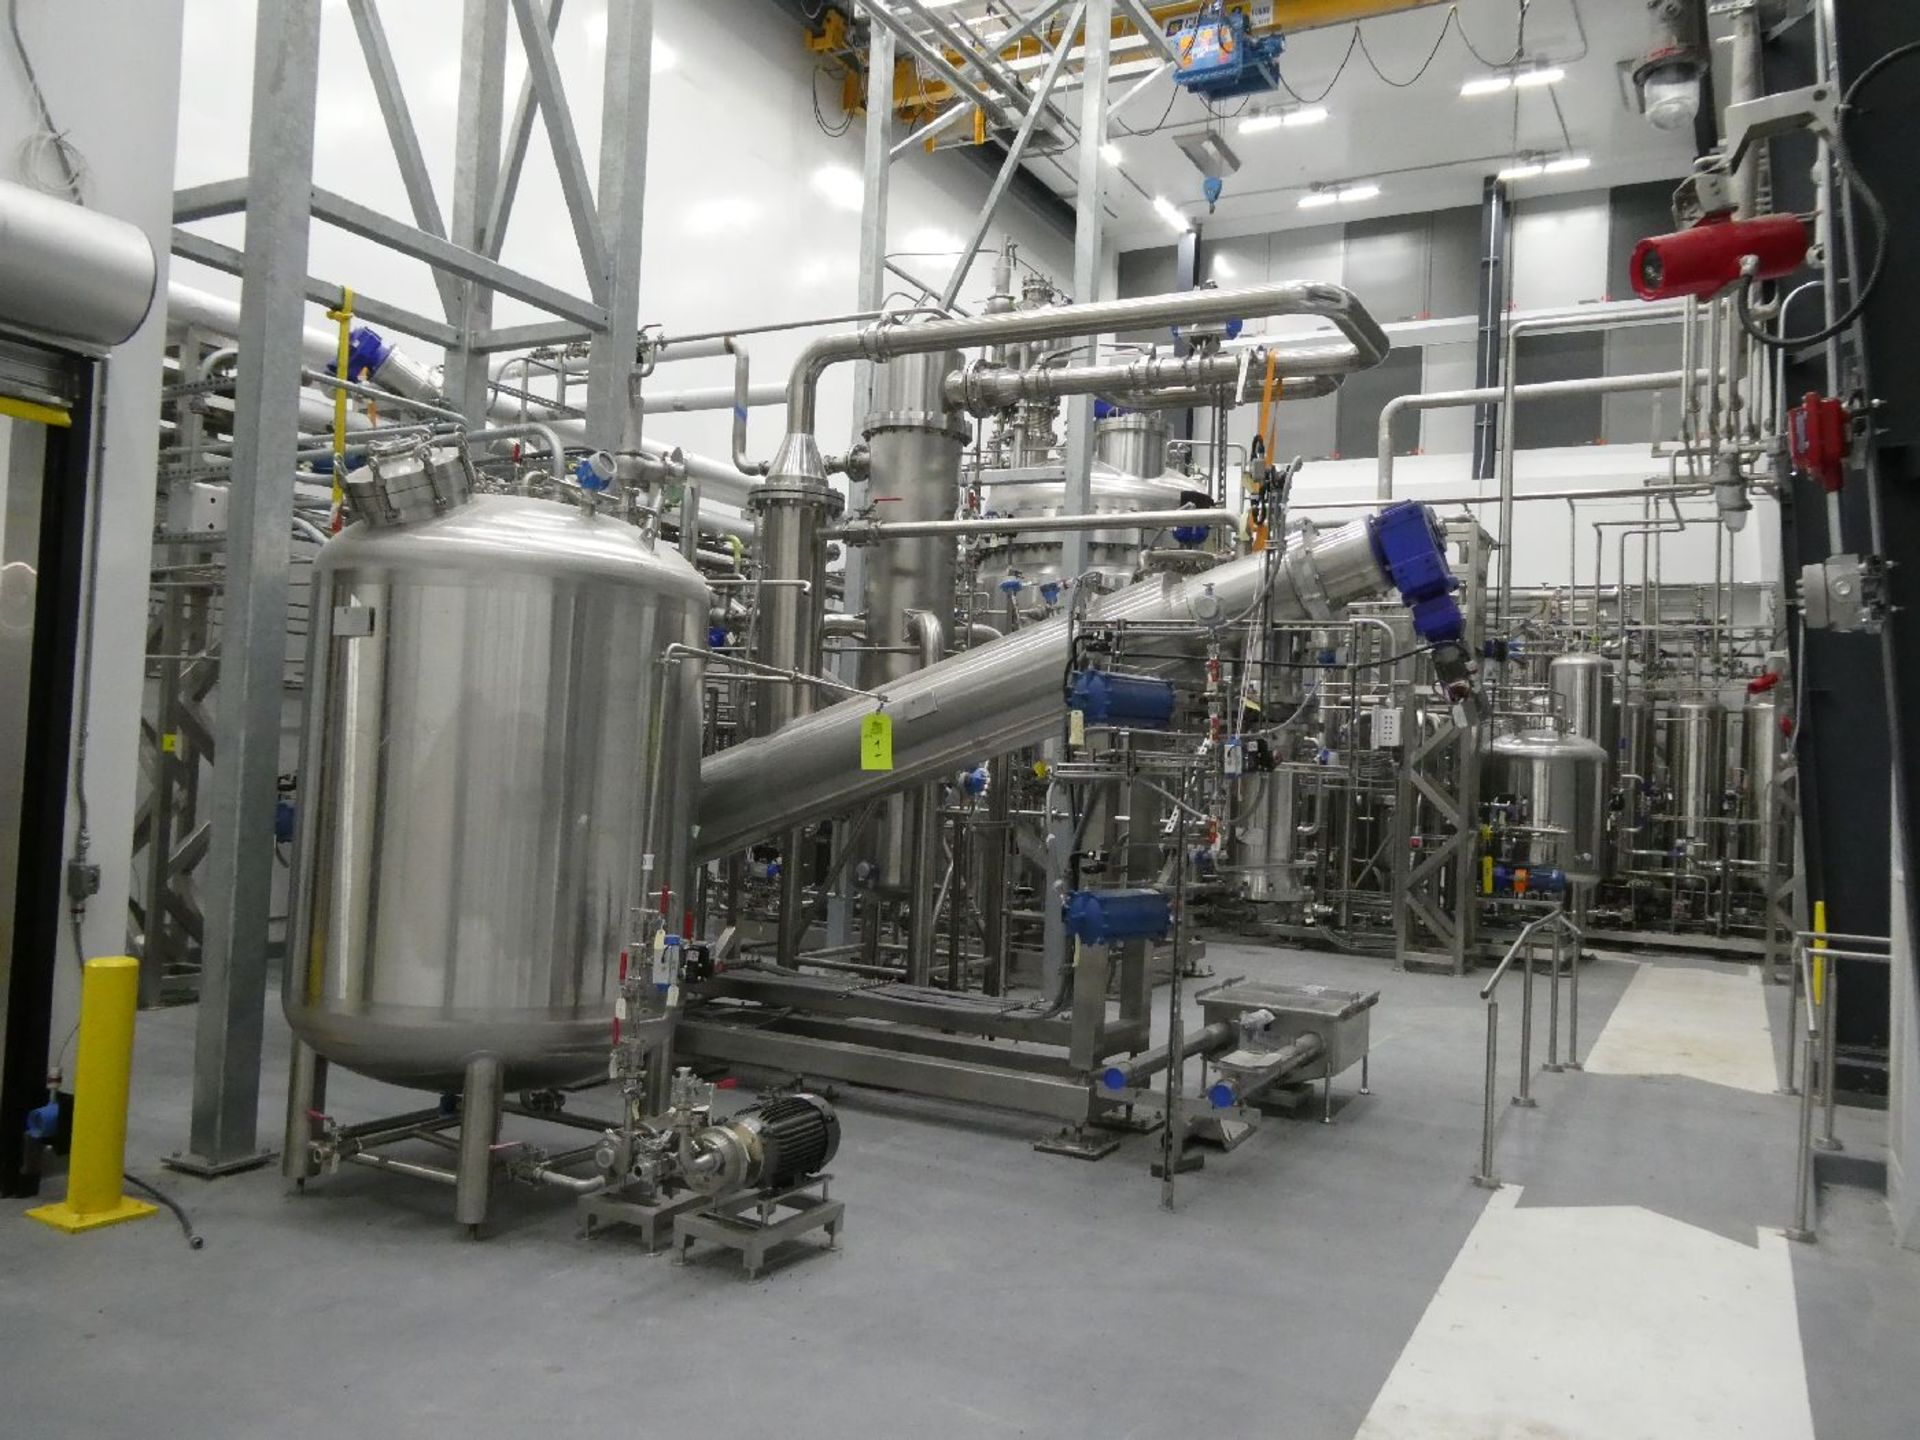 ROTAX Closed Loop Solvent Based Continuous Oil Extraction System - Image 49 of 68